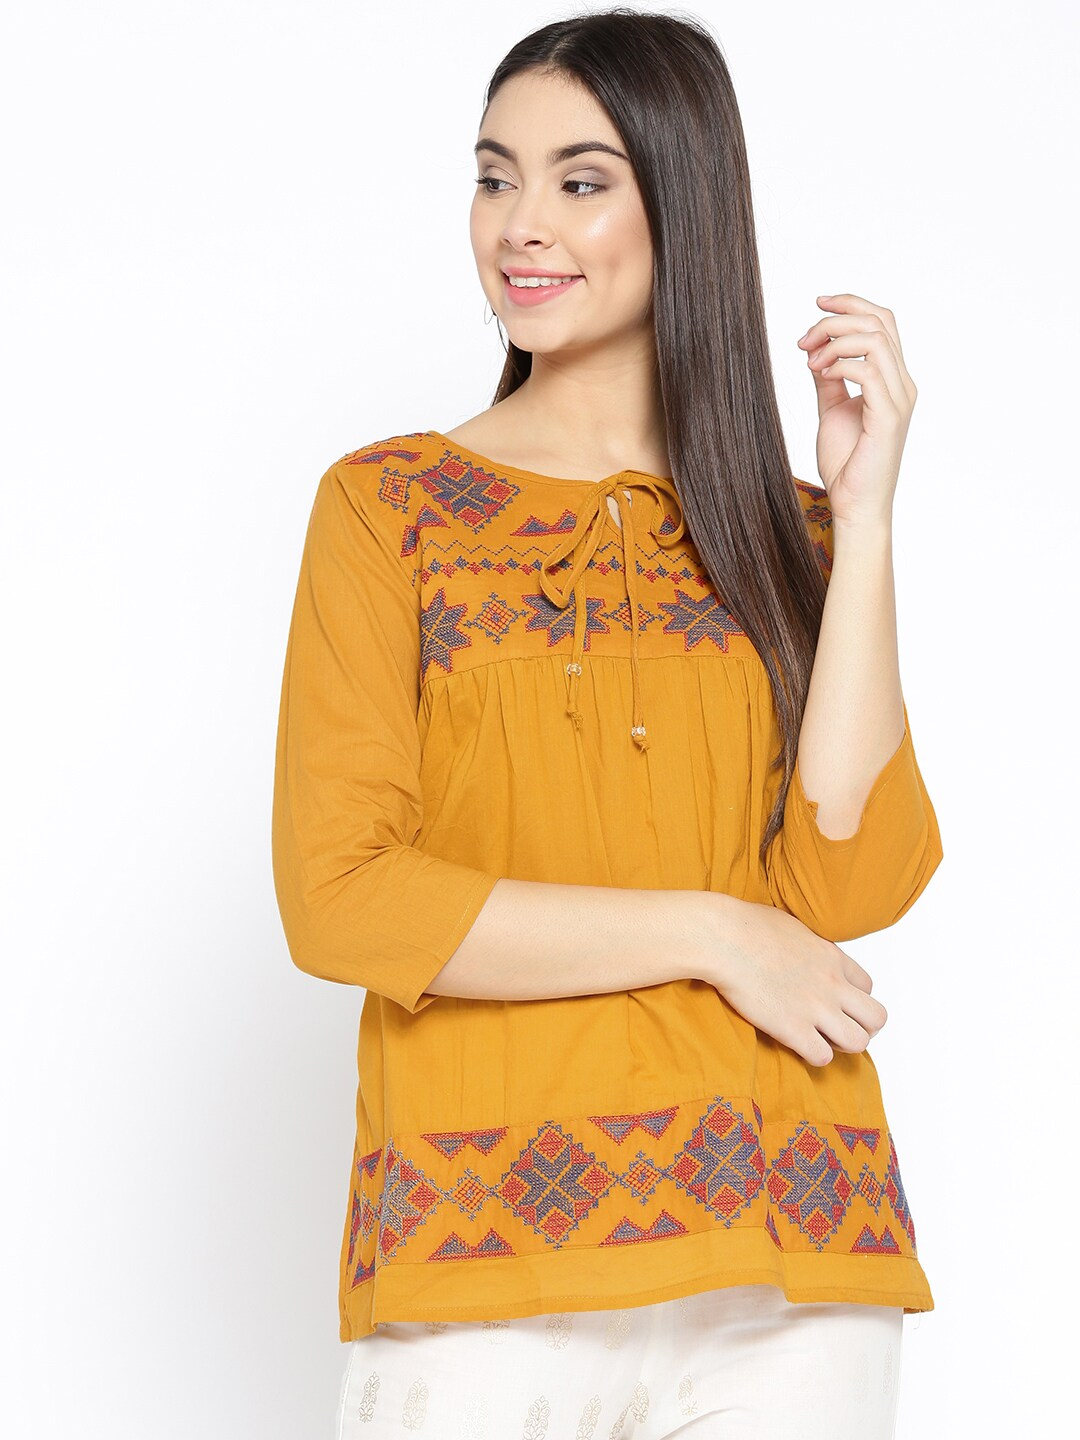 bf3dad52e00b54 Ladies Tops - Buy Tops & T-shirts for Women Online | Myntra